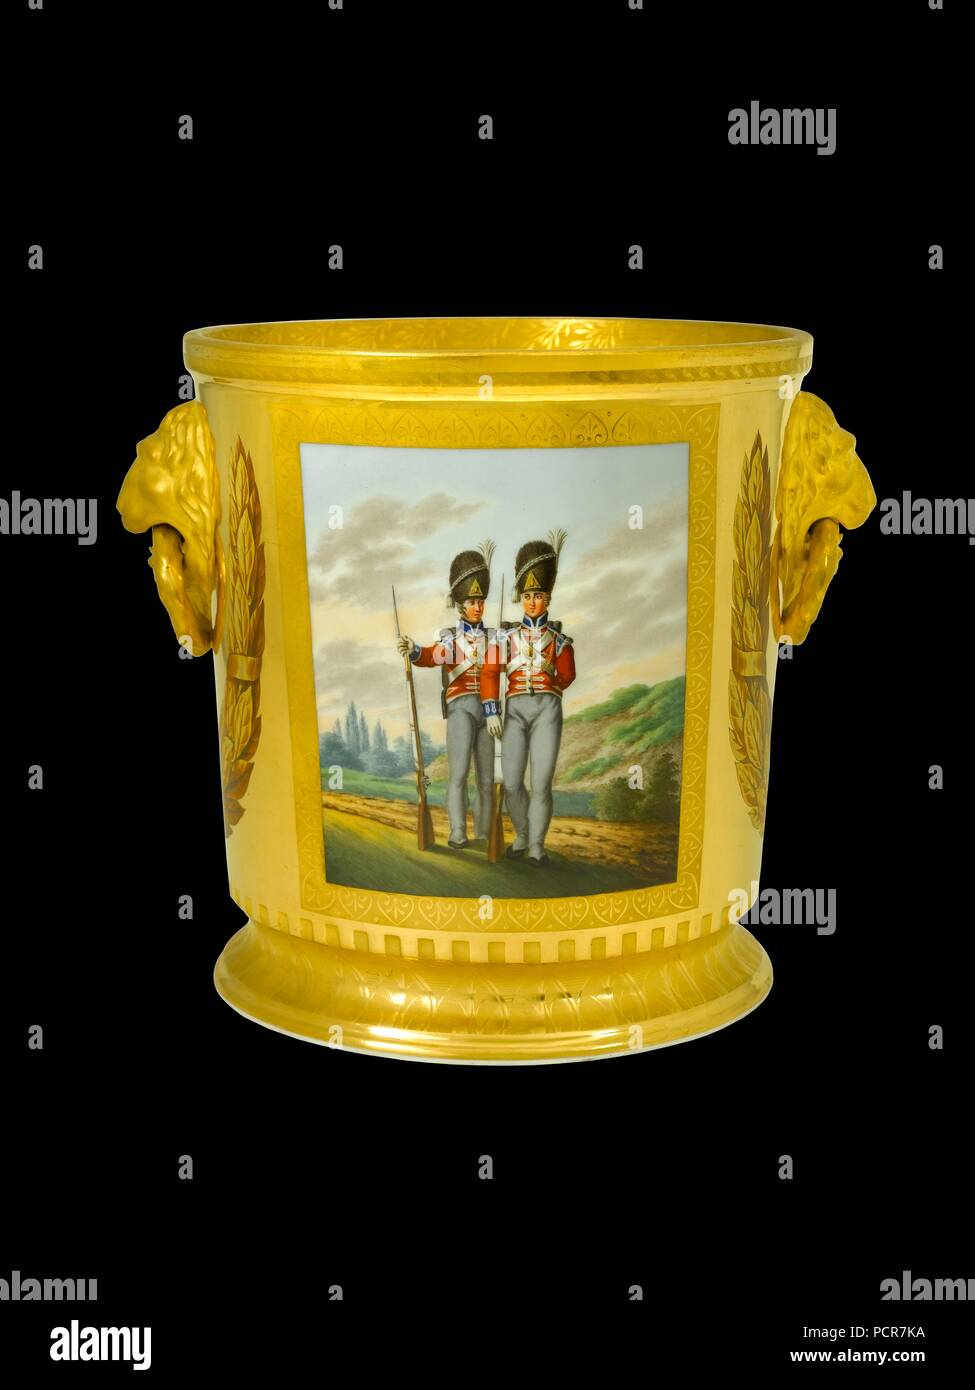 Wine cooler depicting British foot Guards, 1817-1819. Item in Apsley House, London, from the Duke of Wellington's Prussian Service, made in Berlin in 1817-1819 as a gift to the Duke from the King of Prussia. This wine cooler depicts troops commanded by Wellington in France in 1815: in this case soldiers of the 2nd (Coldstream) Guards (left) and the 1st Grenadier Guards. - Stock Image